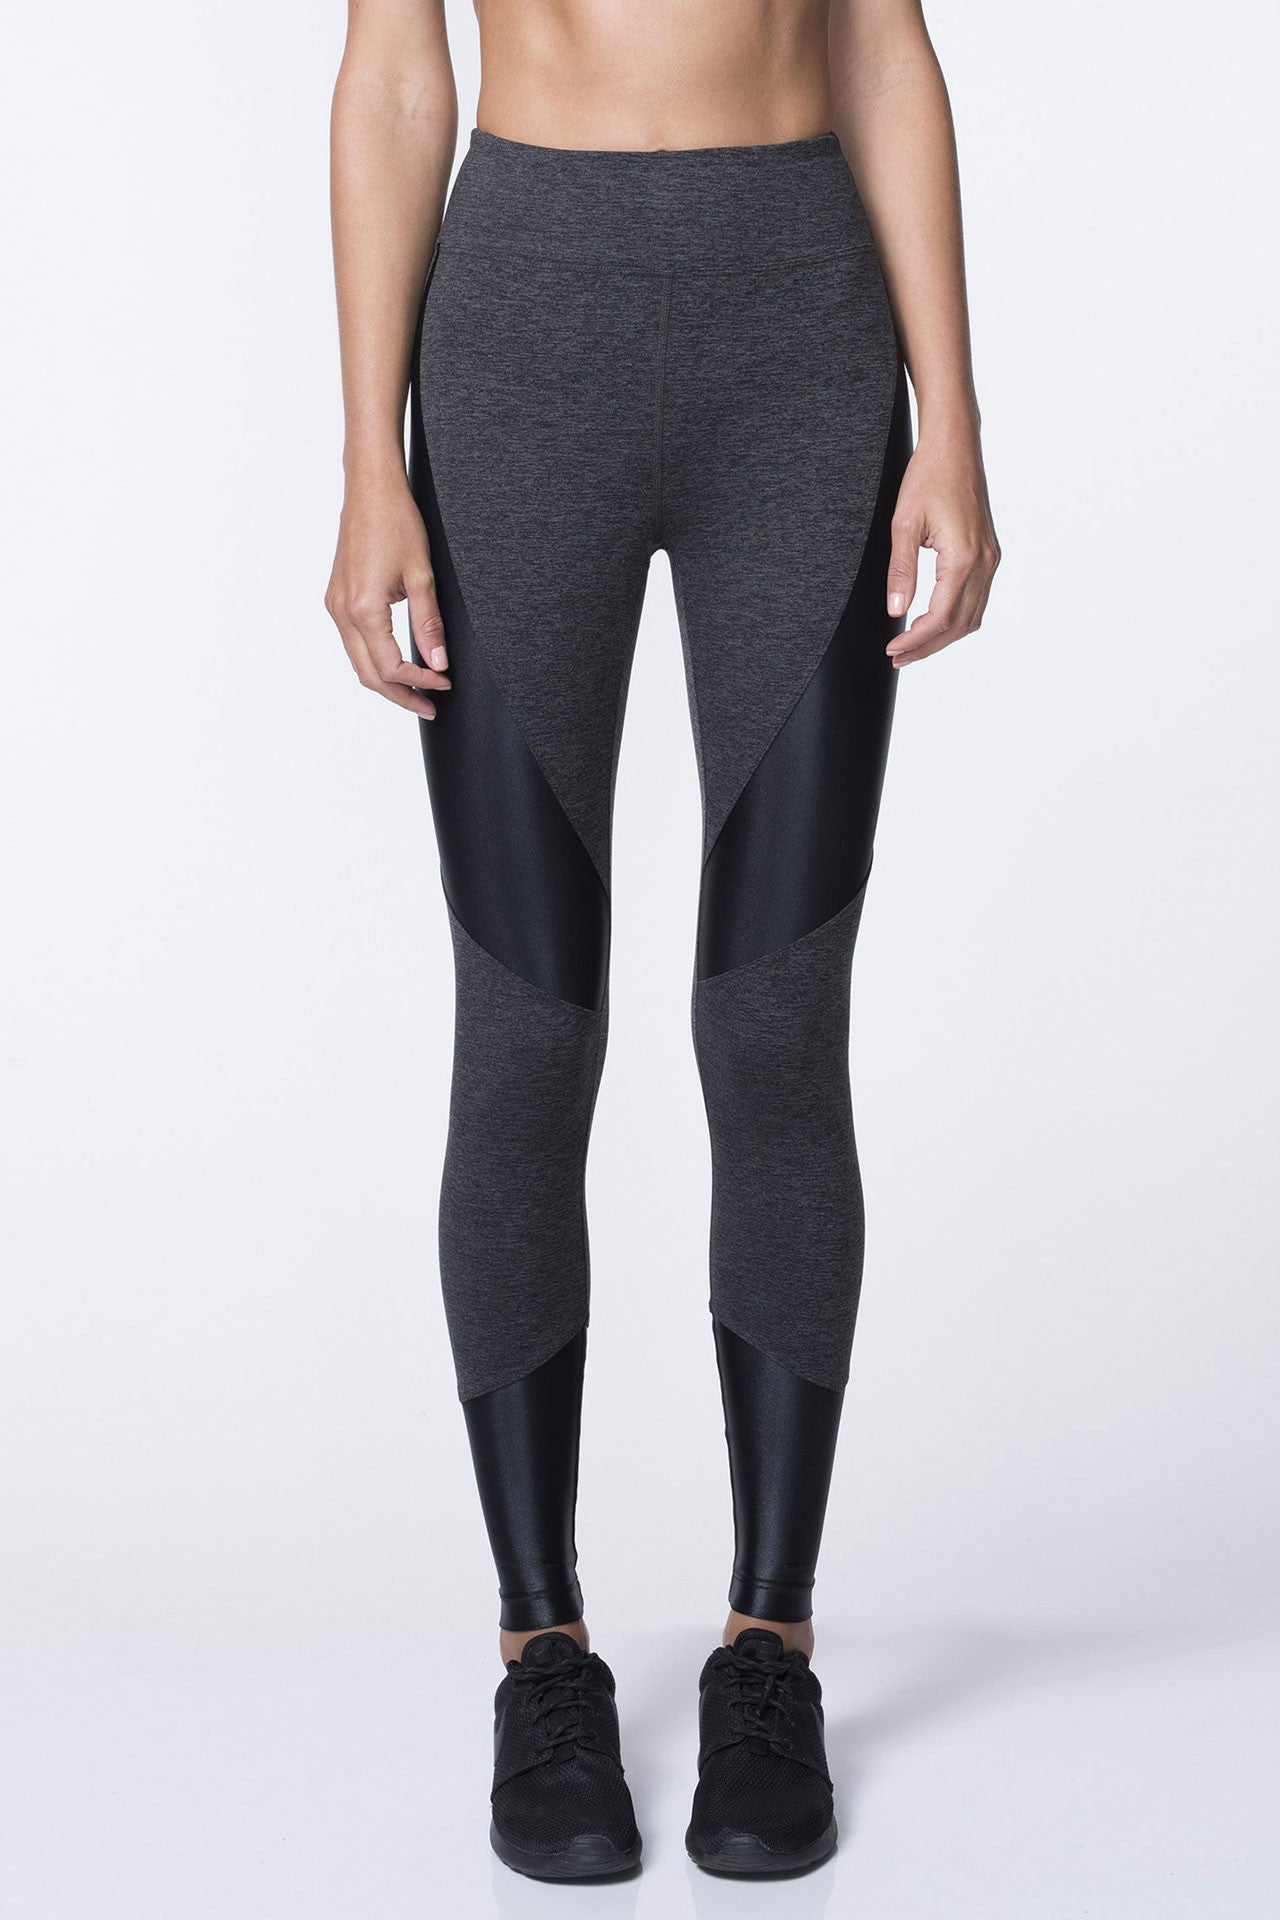 Koral Forge Legging - Dark Heather/Black - Sculptique